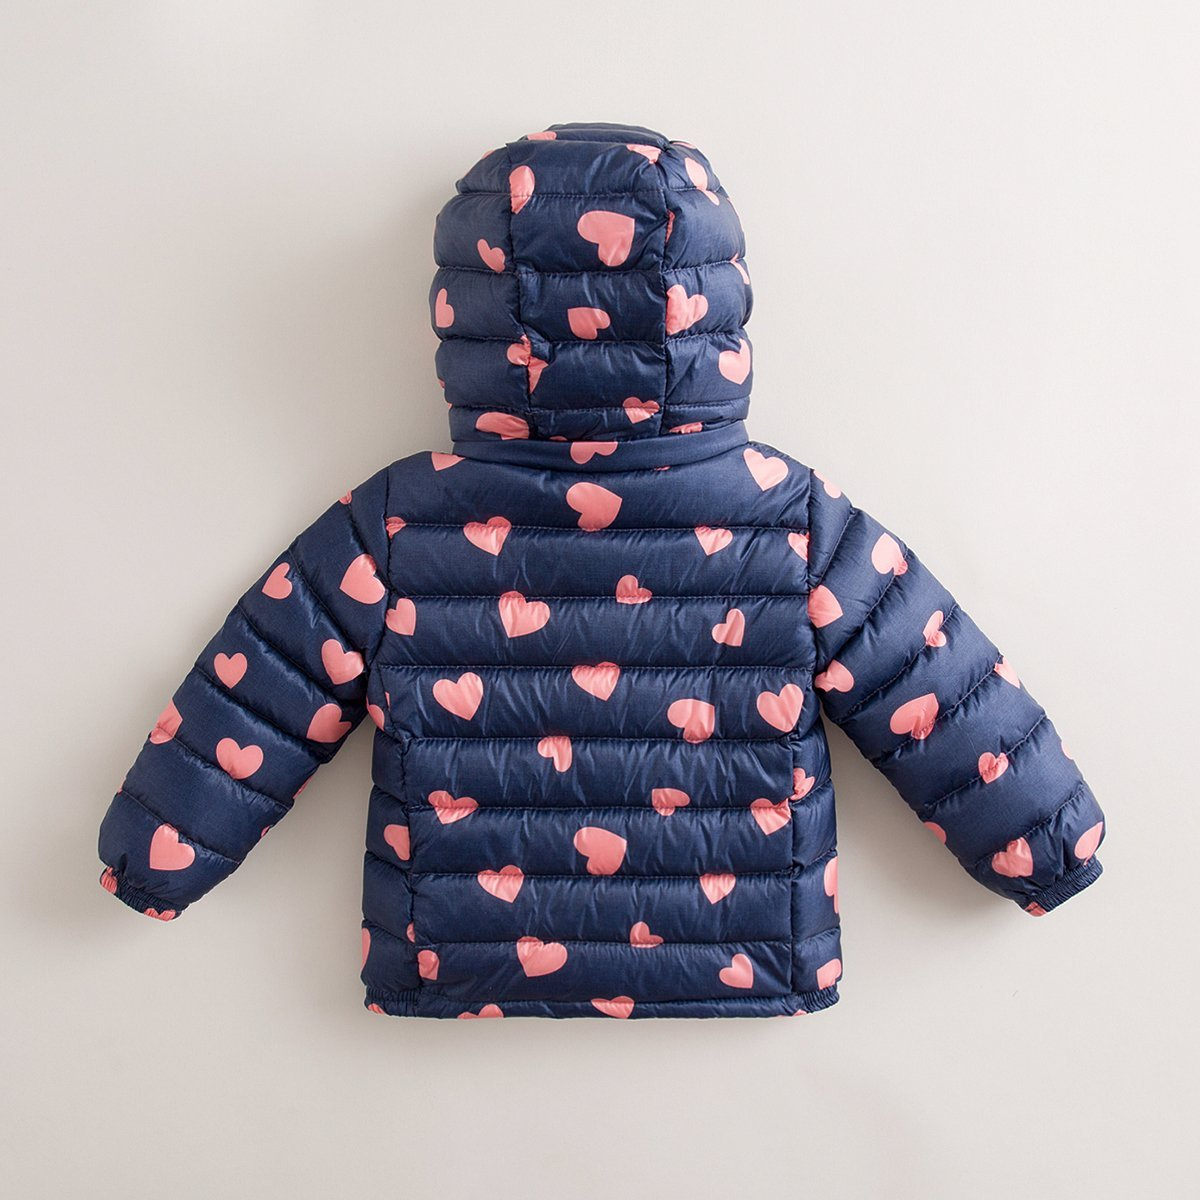 marc janie Baby Boys Girls Kids' Outerwear Ultra Light Down Jacket with Removable Hood 6T Blue Pink Love by marc janie (Image #1)